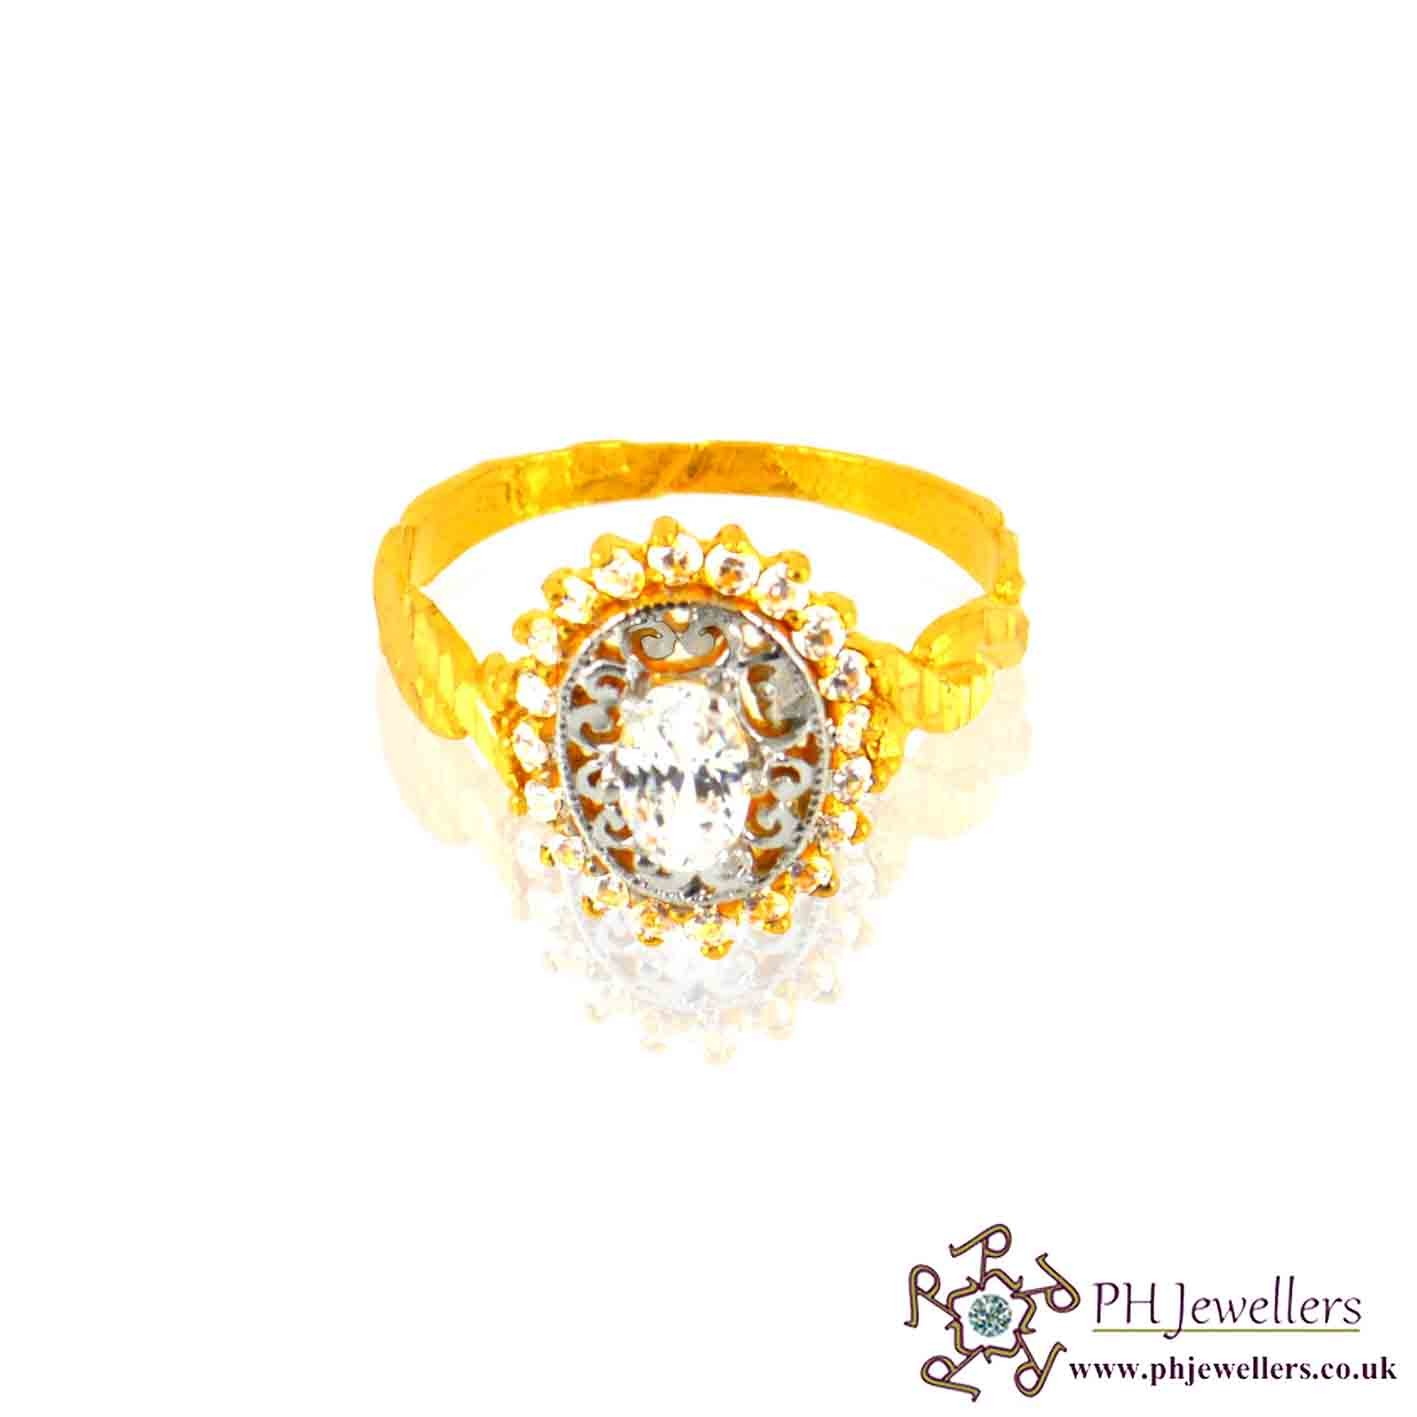 22ct 916 Hallmark Yellow Gold Oval Size O 1/2,P Ring CZ SR12